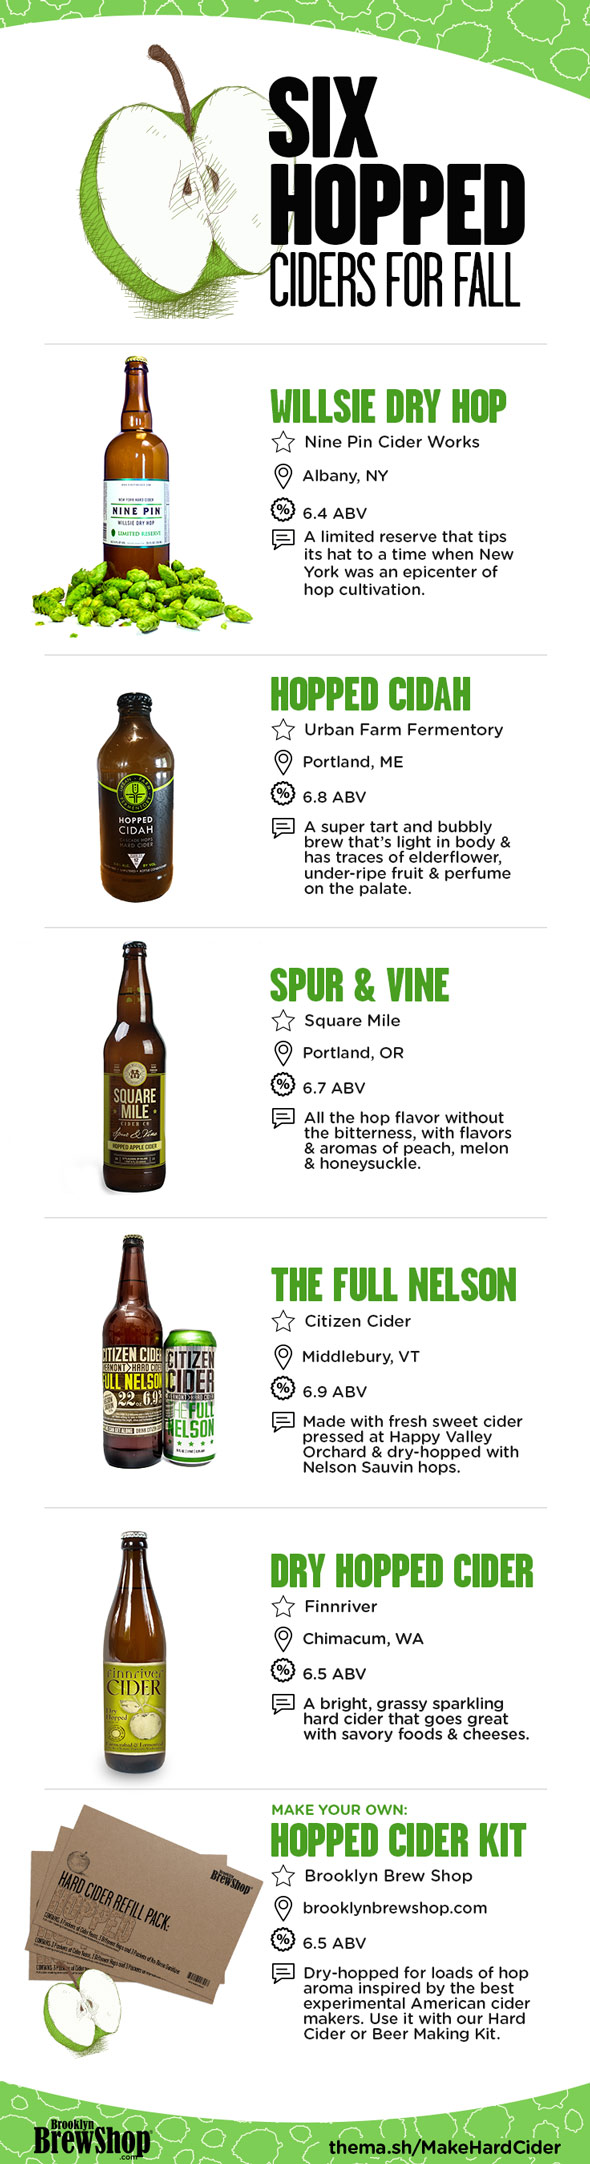 """Six Fantastic Hopped Ciders for Fall"" infographic via brooklynbrewshop.com."